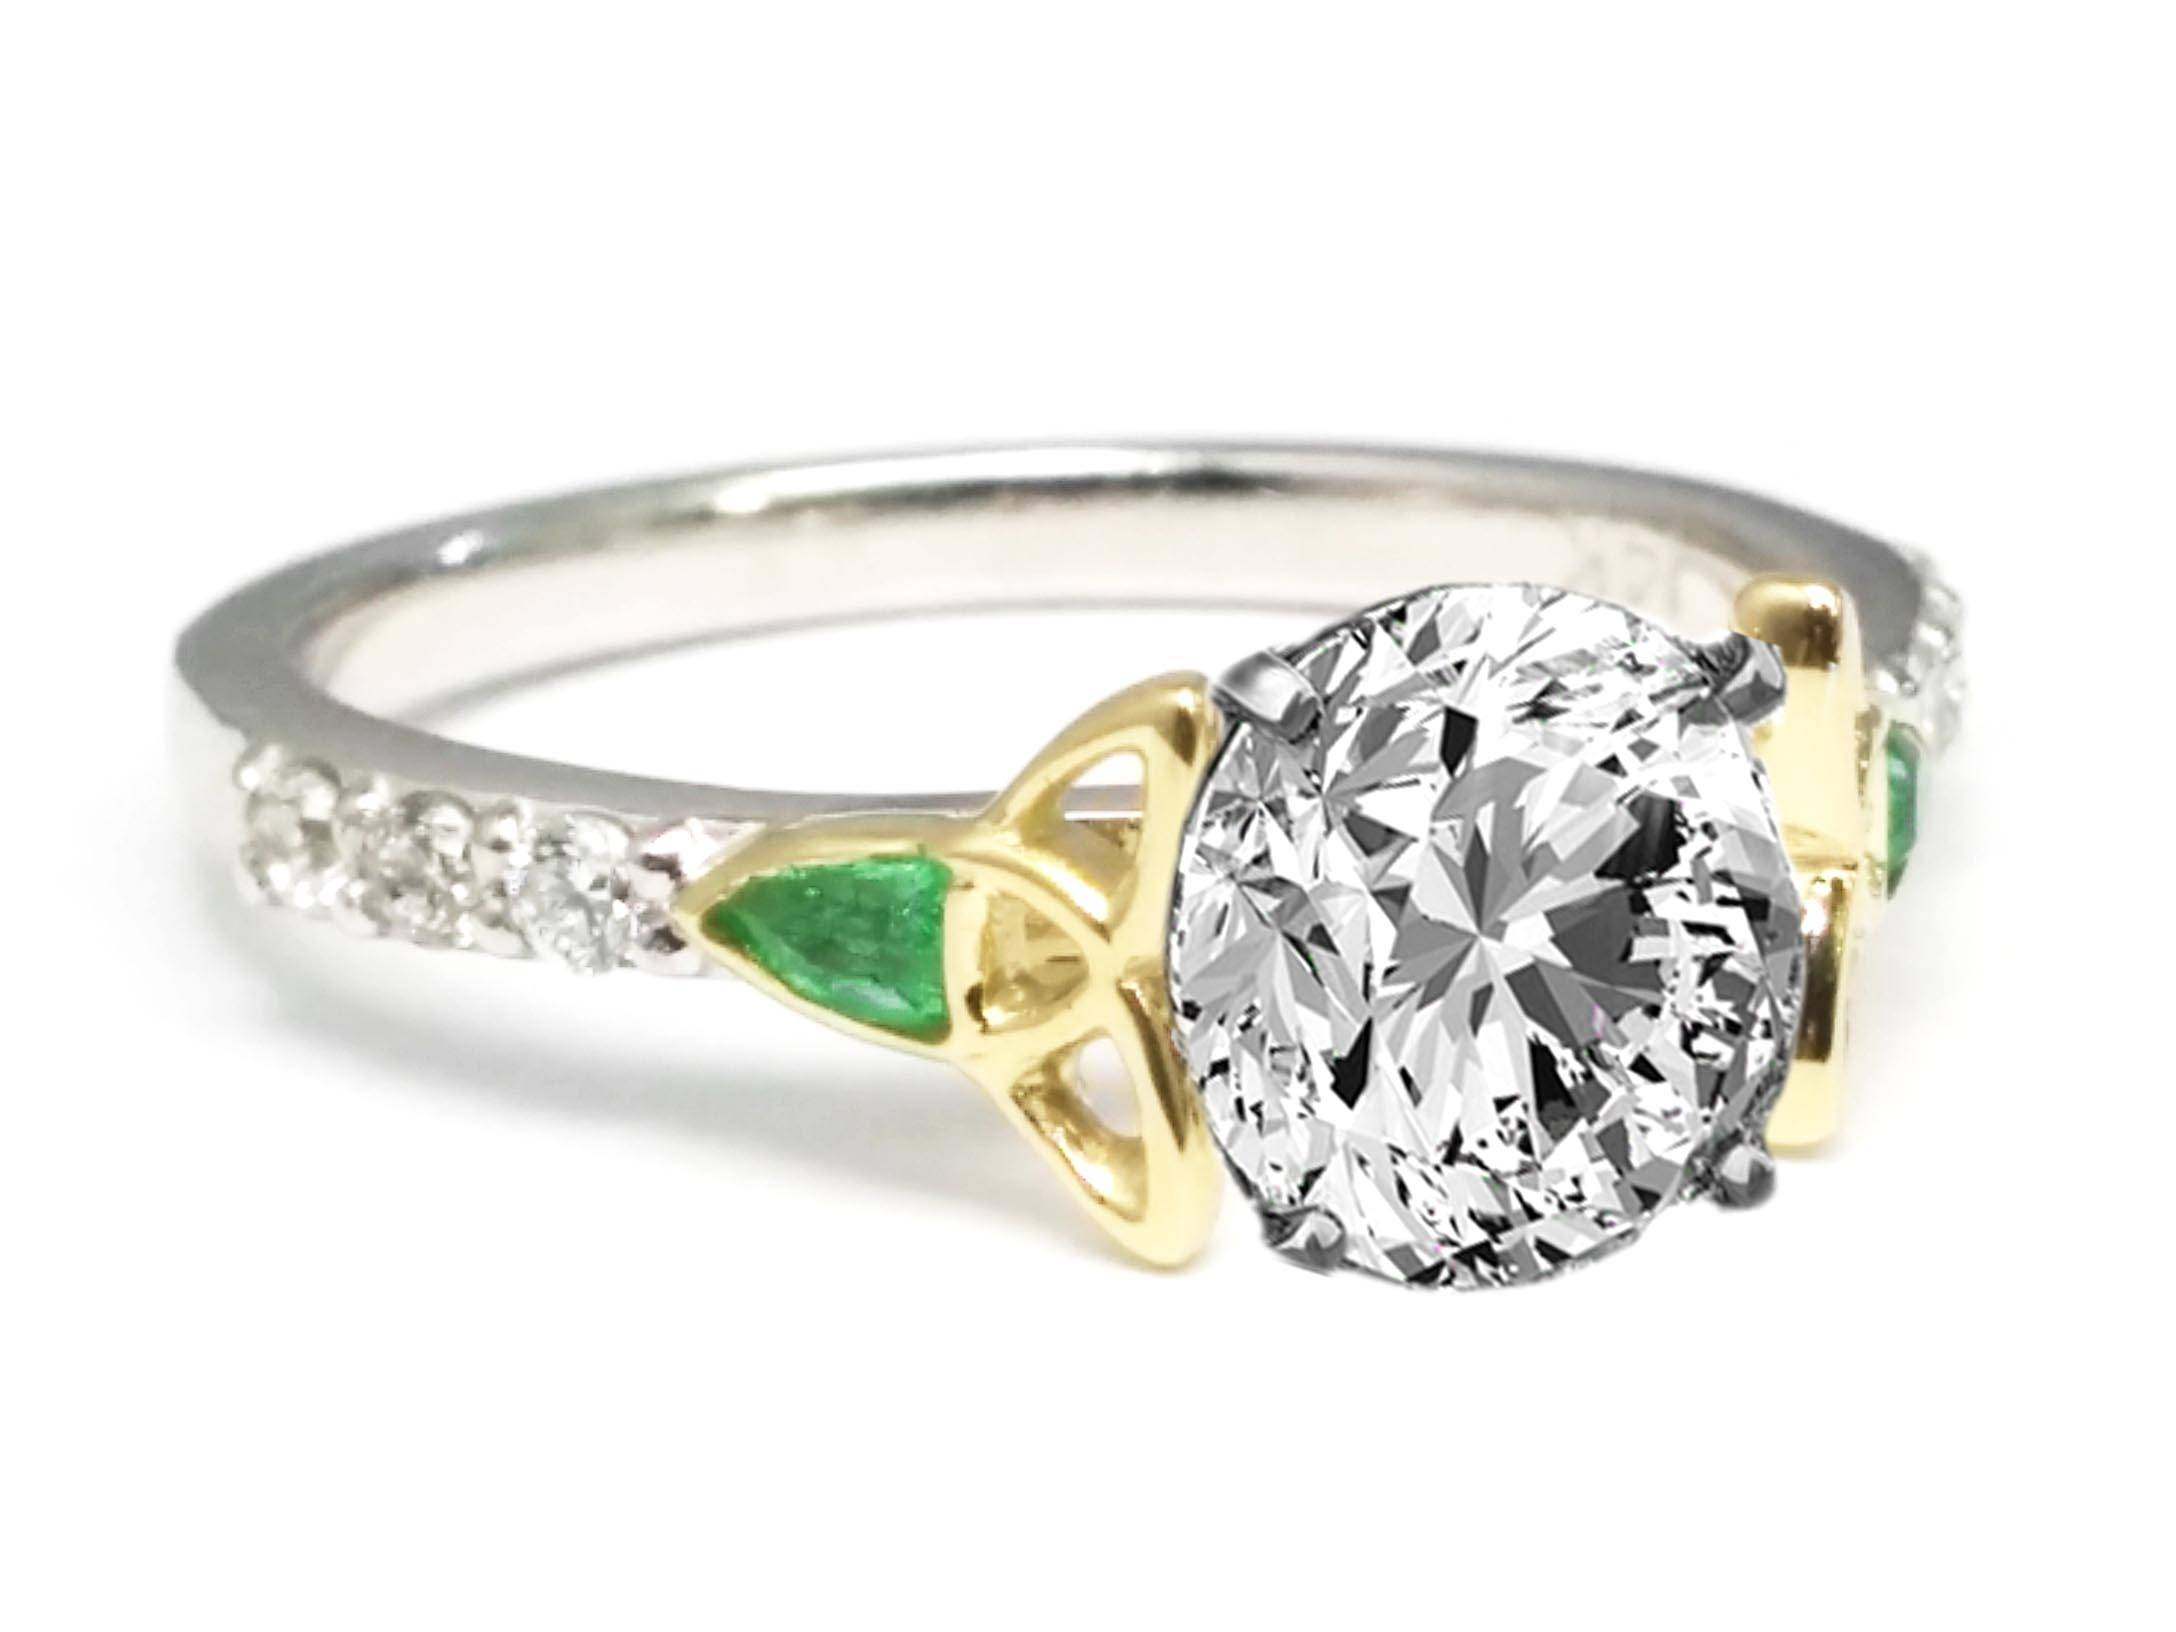 Celtic – Engagement Rings From Mdc Diamonds Nyc Intended For Vintage Celtic Engagement Rings (View 10 of 15)